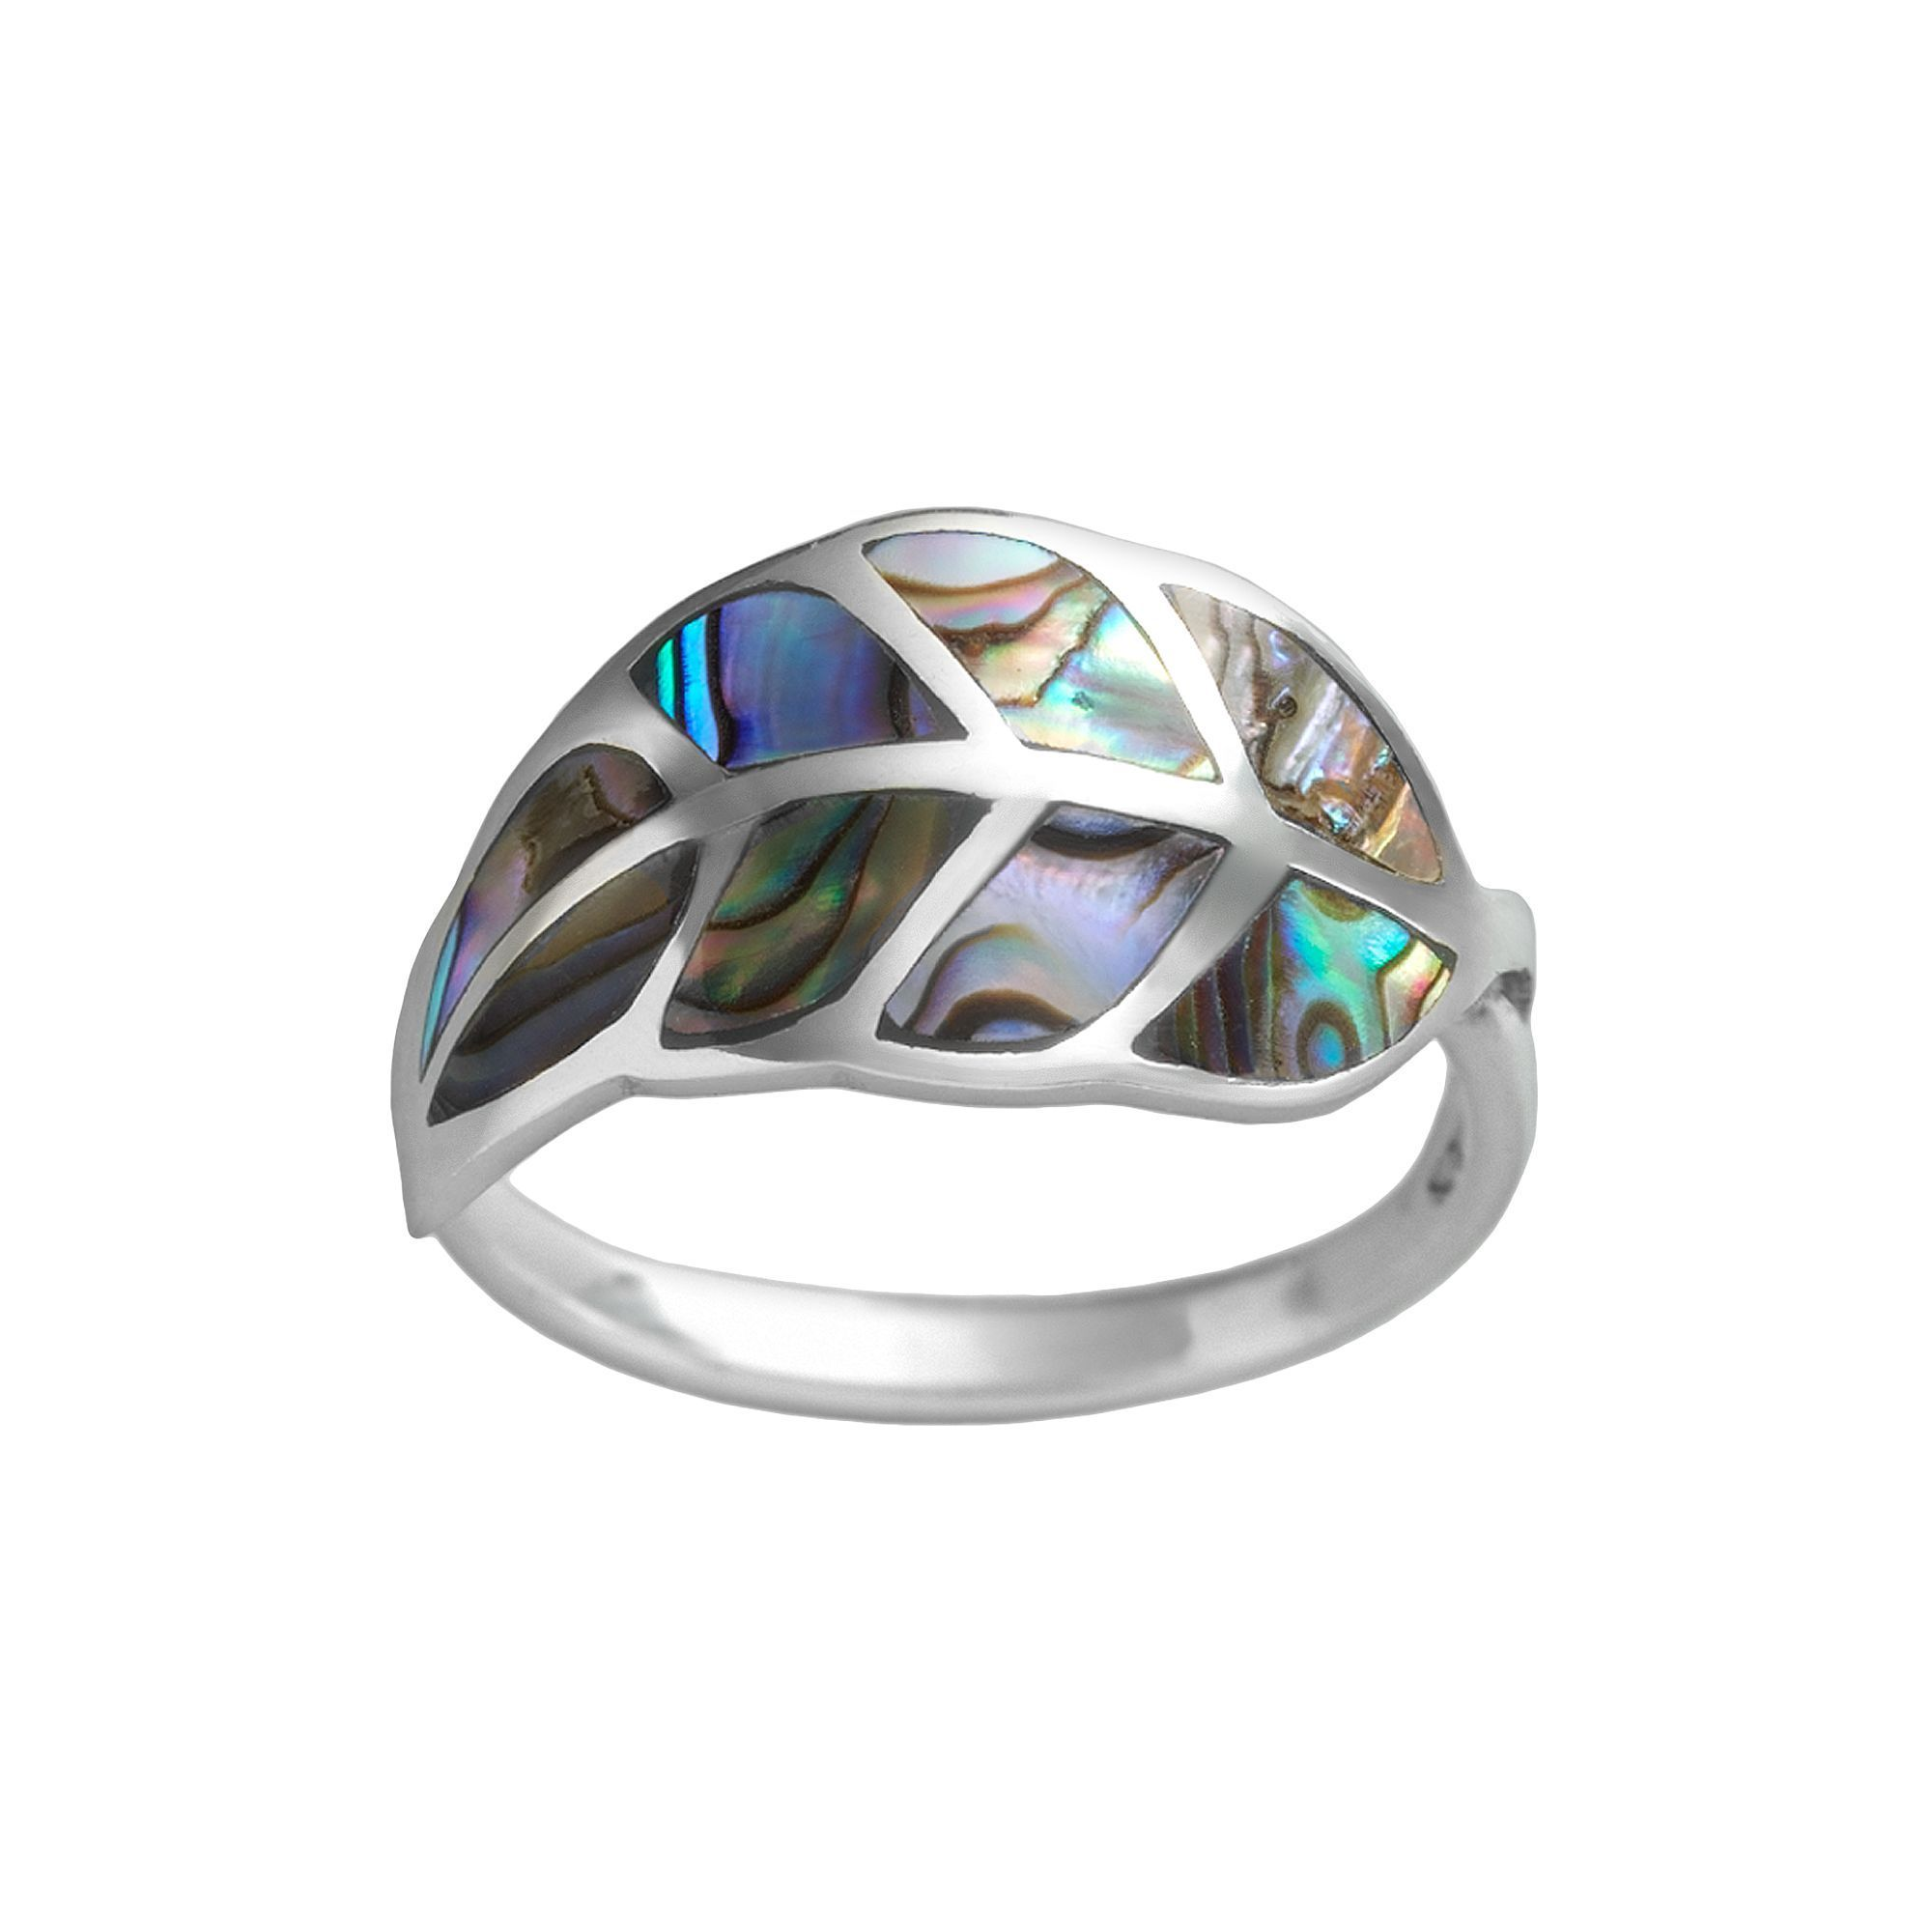 set bands matching inlay com wedding pin paradise tungsten meteorite rings by blue abalone ringsparadise